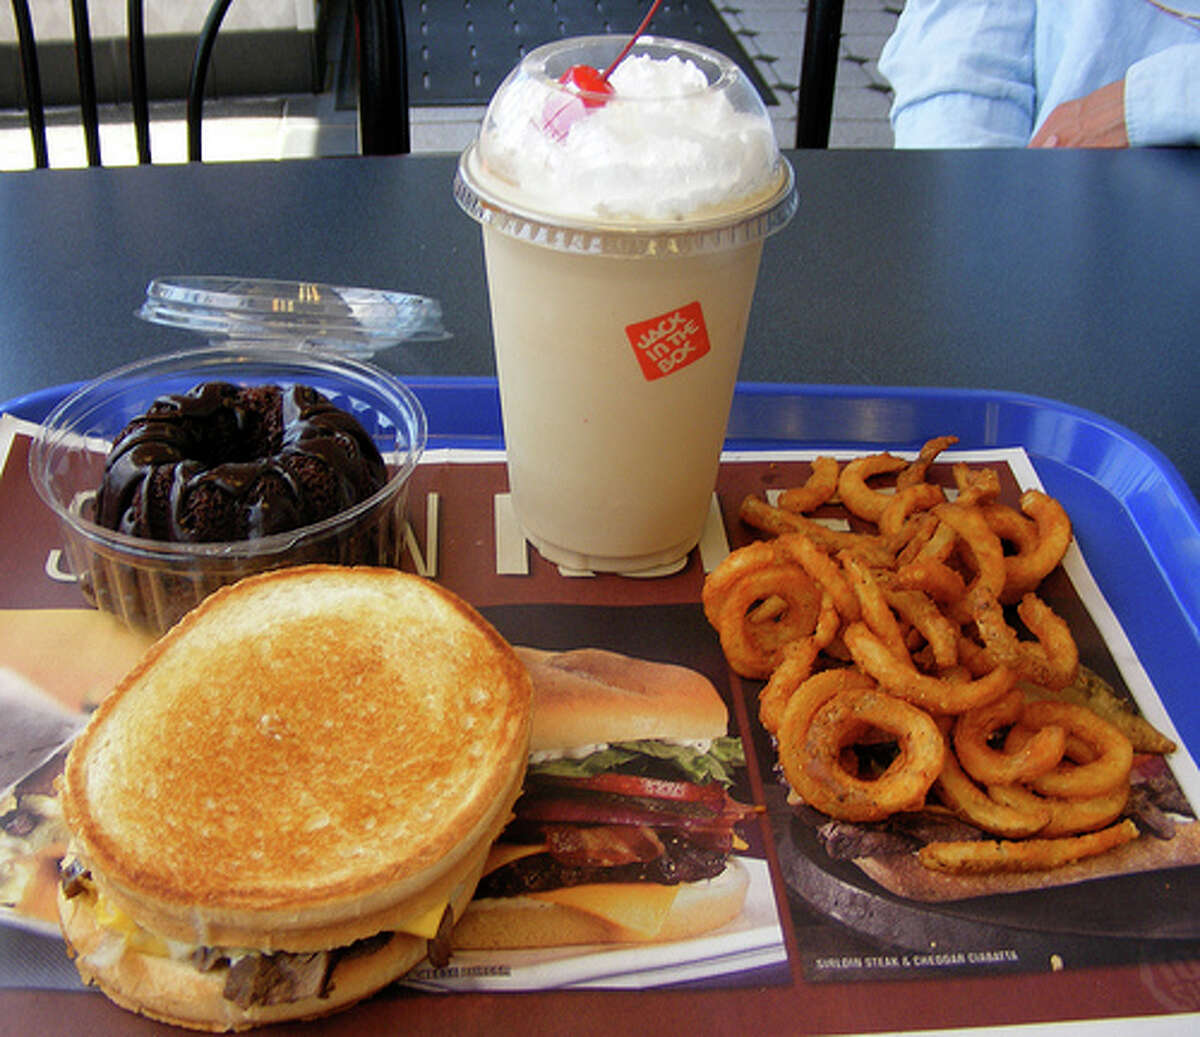 Eating fast food for lunch: Most office-folk go out for an unhealthy lunch once in a while - some more than others, but even the occasional indulgence has its negative effects. A portion of fast food usually has around double the calories to another similar food of the same size, and they have a lot of oxidized fat, which increases the risk of heart disease. (Photo: Newbirth35, Flickr) Source: Business Insider